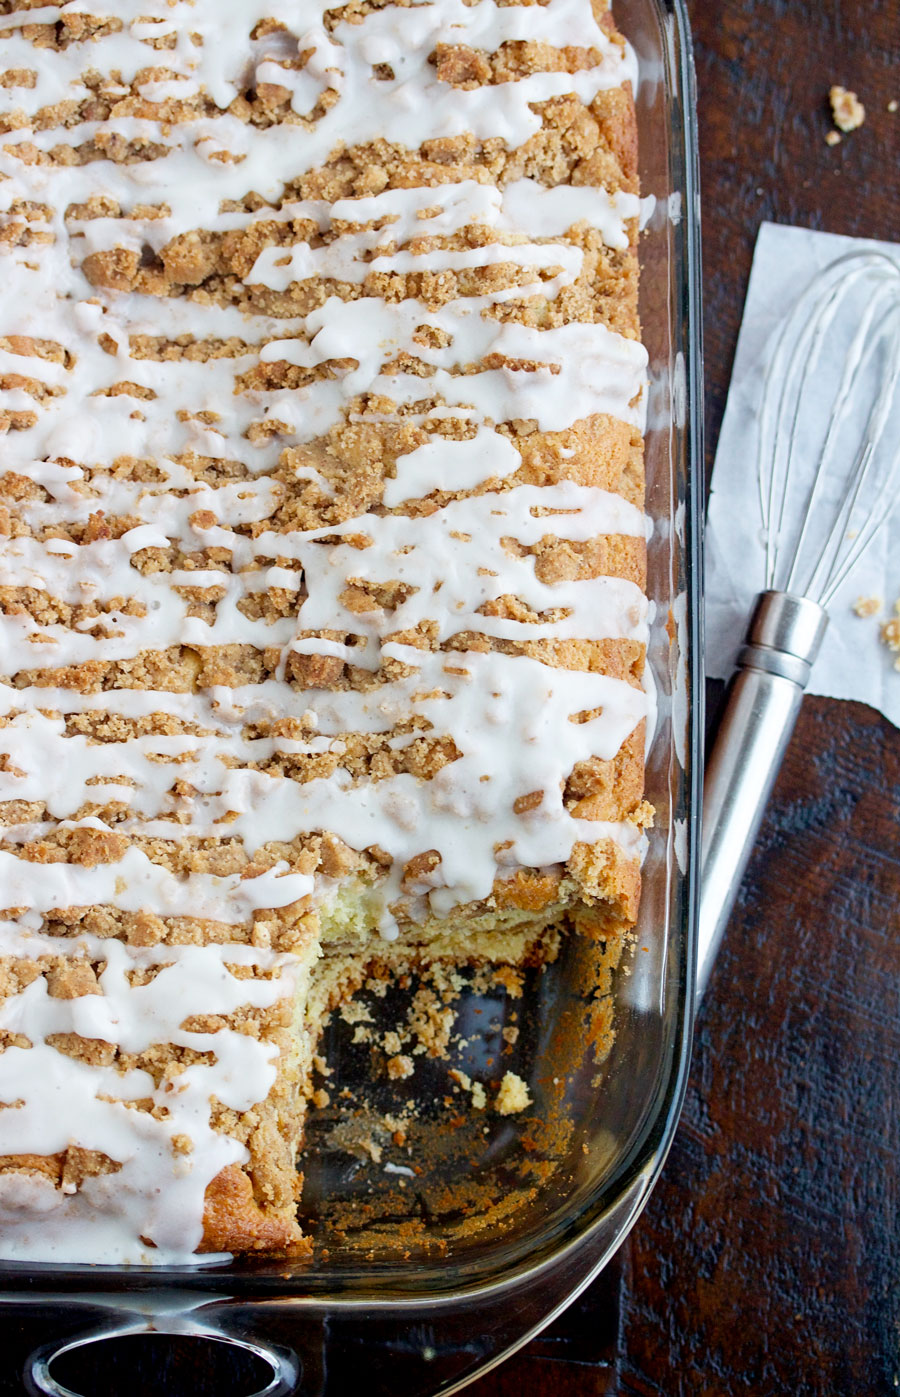 Overhead shot of a pan of sour cream coffee cake with cinnamon streusel with a piece cut out